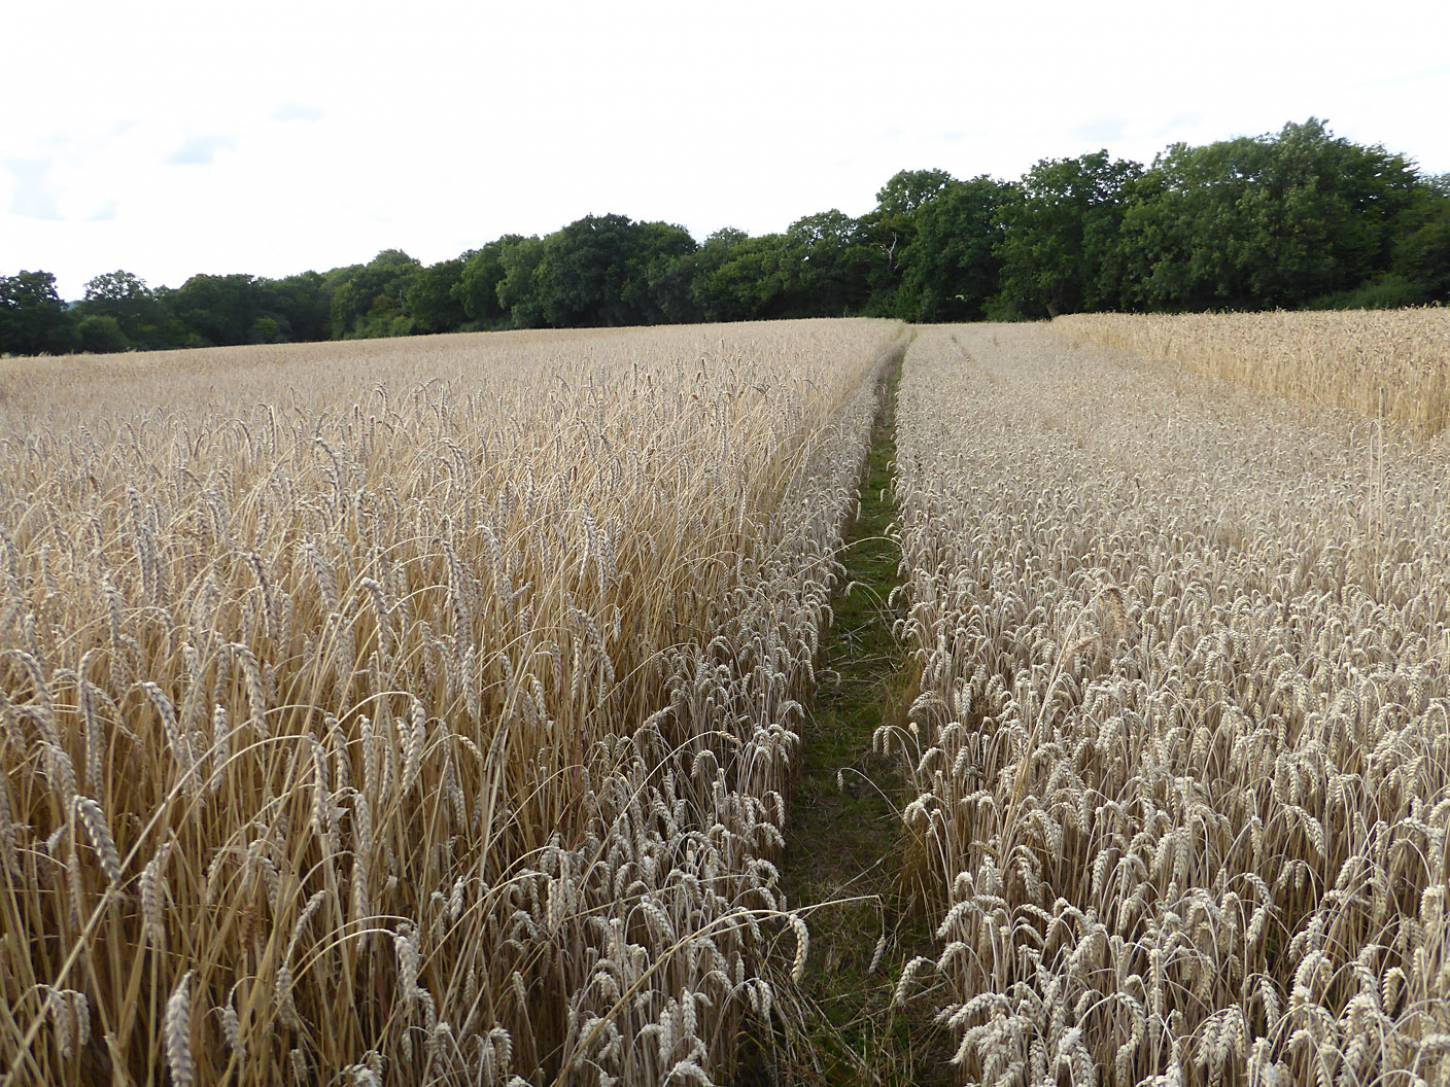 Hen Gymro S70 on left, modern Nelson wheat in middle, Ble de Flandre on right, farm review pre-harvest '17 - 6:20pm&nbsp;1<sup>st</sup>&nbsp;Aug.&nbsp;'17  <a href='http://maps.google.com/?t=h&q=51.208383,-0.084958&z=18&output=embed' target=_blank><img src='http://www.brockwell-bake.org.uk/img/marker.png' style='border:none;vertical-align:top' height=16px></a>